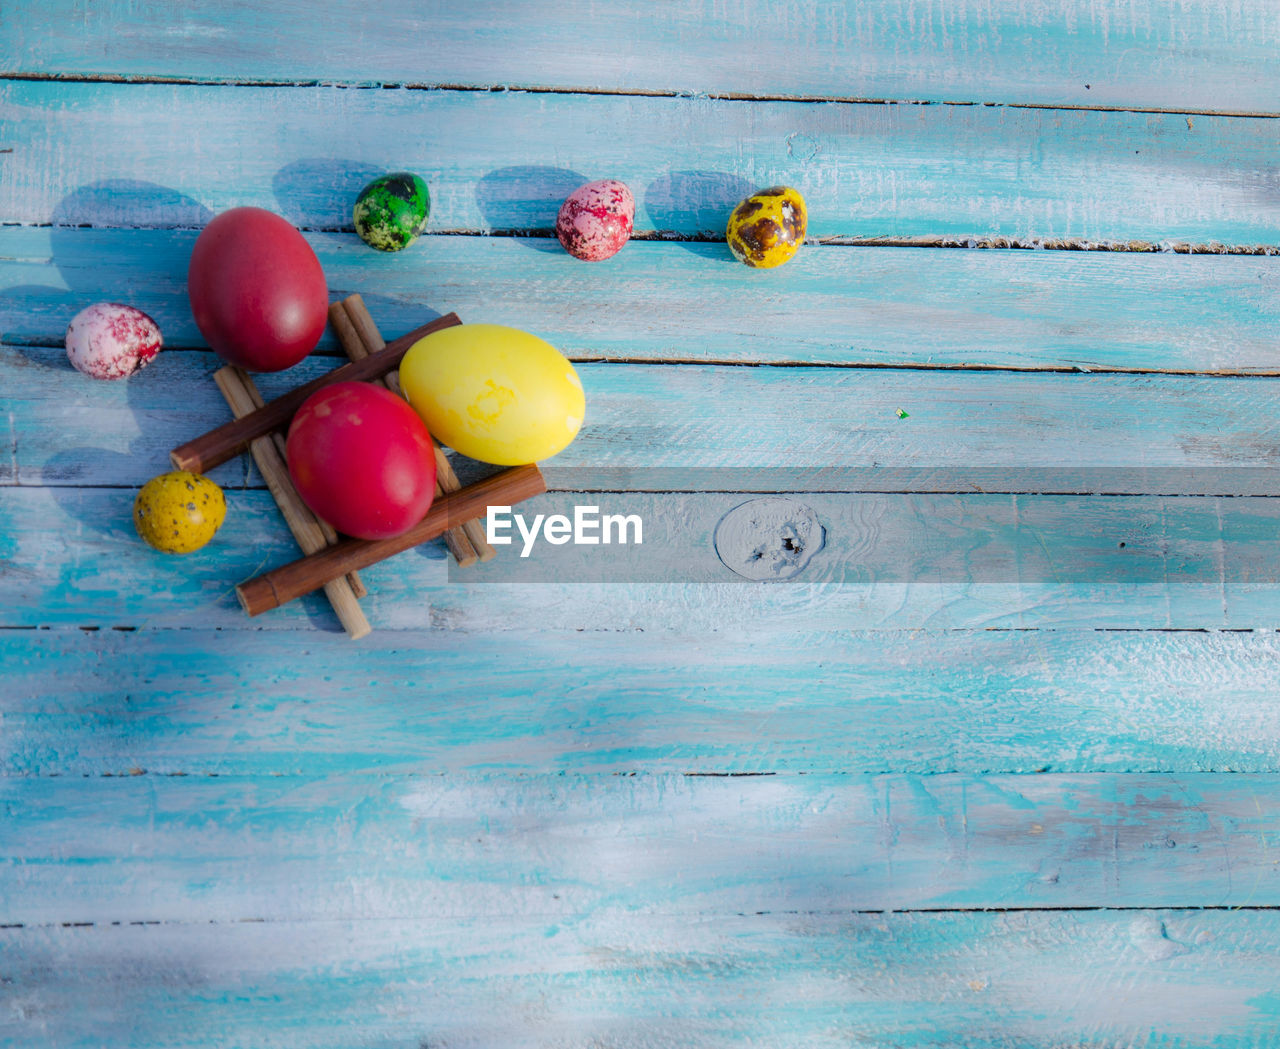 wood - material, still life, food, indoors, table, food and drink, directly above, freshness, fruit, multi colored, wellbeing, healthy eating, no people, blue, tomato, vegetable, red, high angle view, close-up, choice, ripe